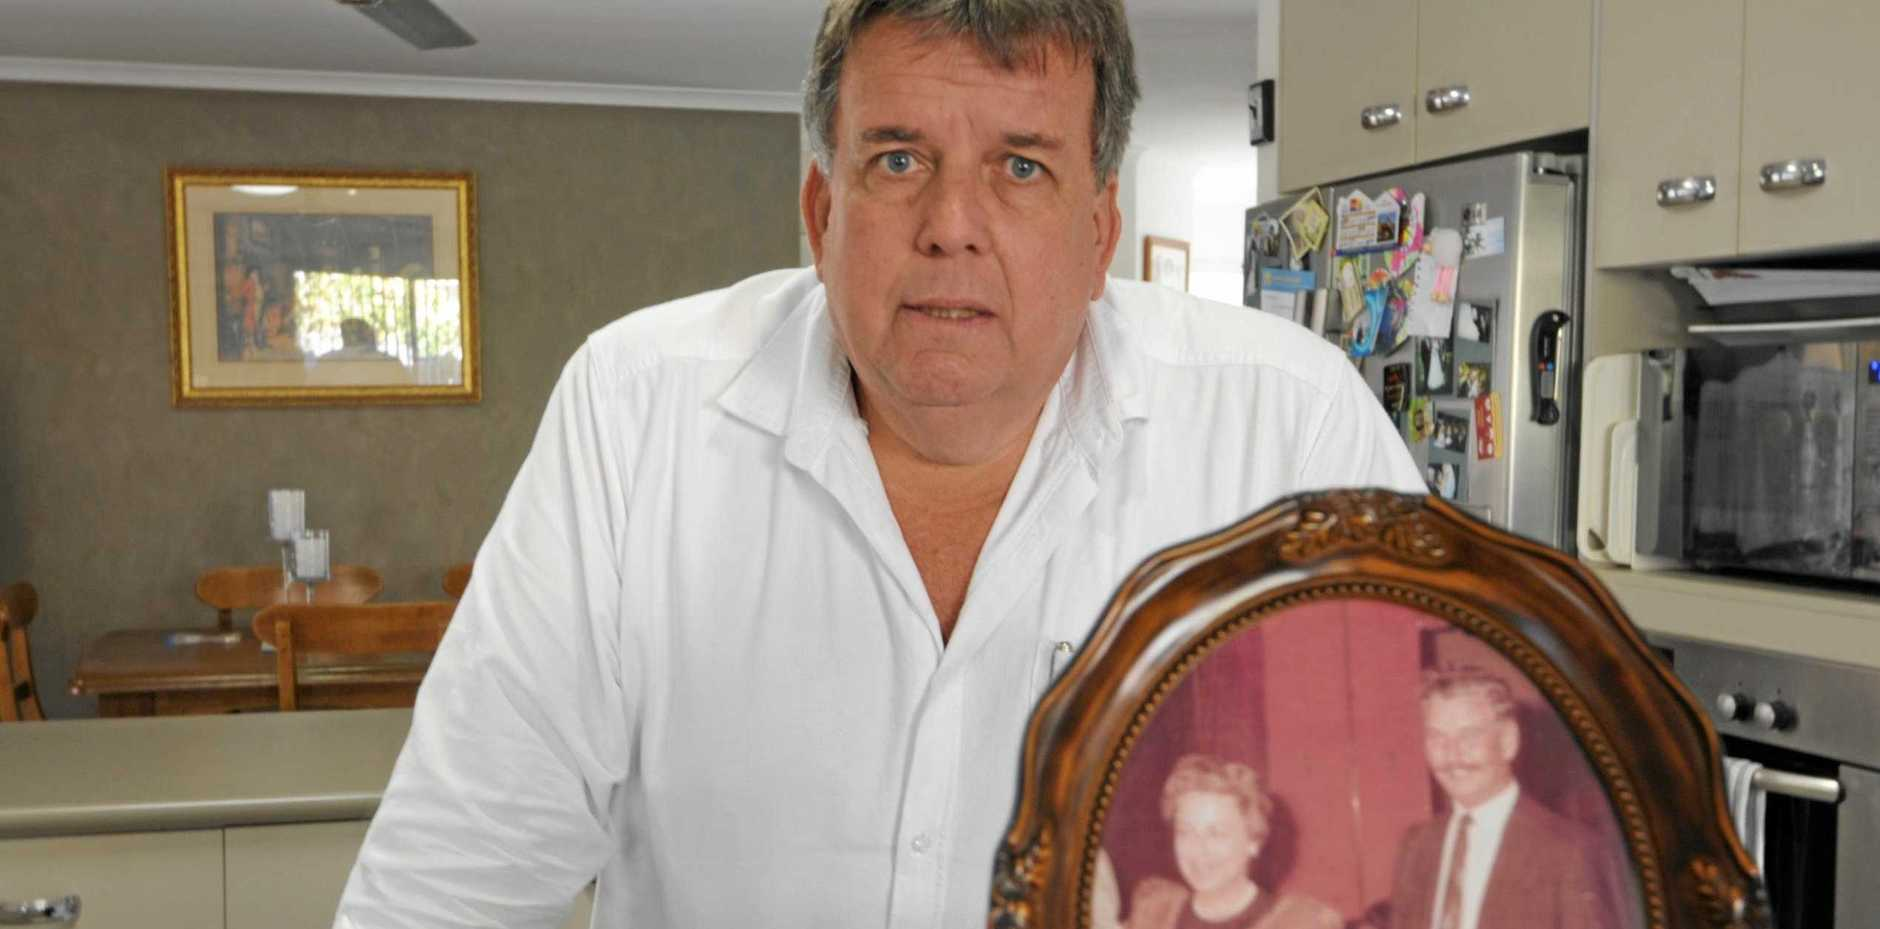 BRAVE CHOICE: Councillor, Greg Barnes said that his beloved Mum made the decision because she wanted to do what was best for her family -